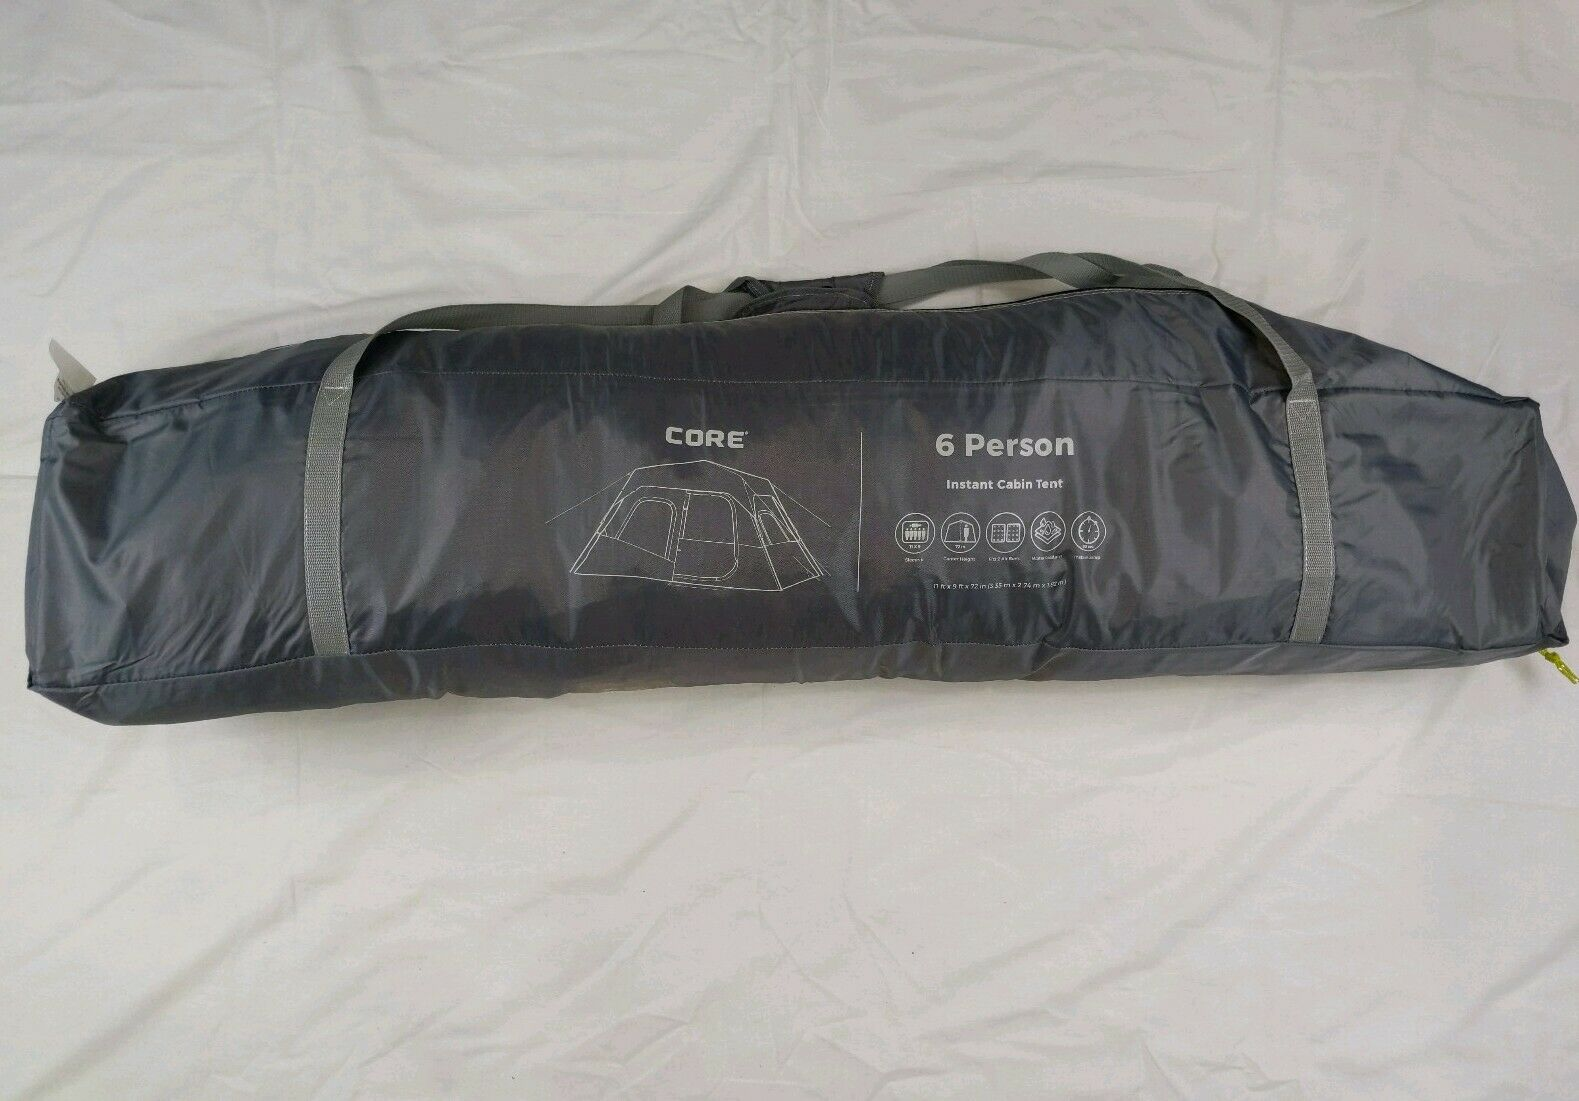 CORE 6-person Instant Cabin Tent G /Green #40007C - Open Box/Store Display